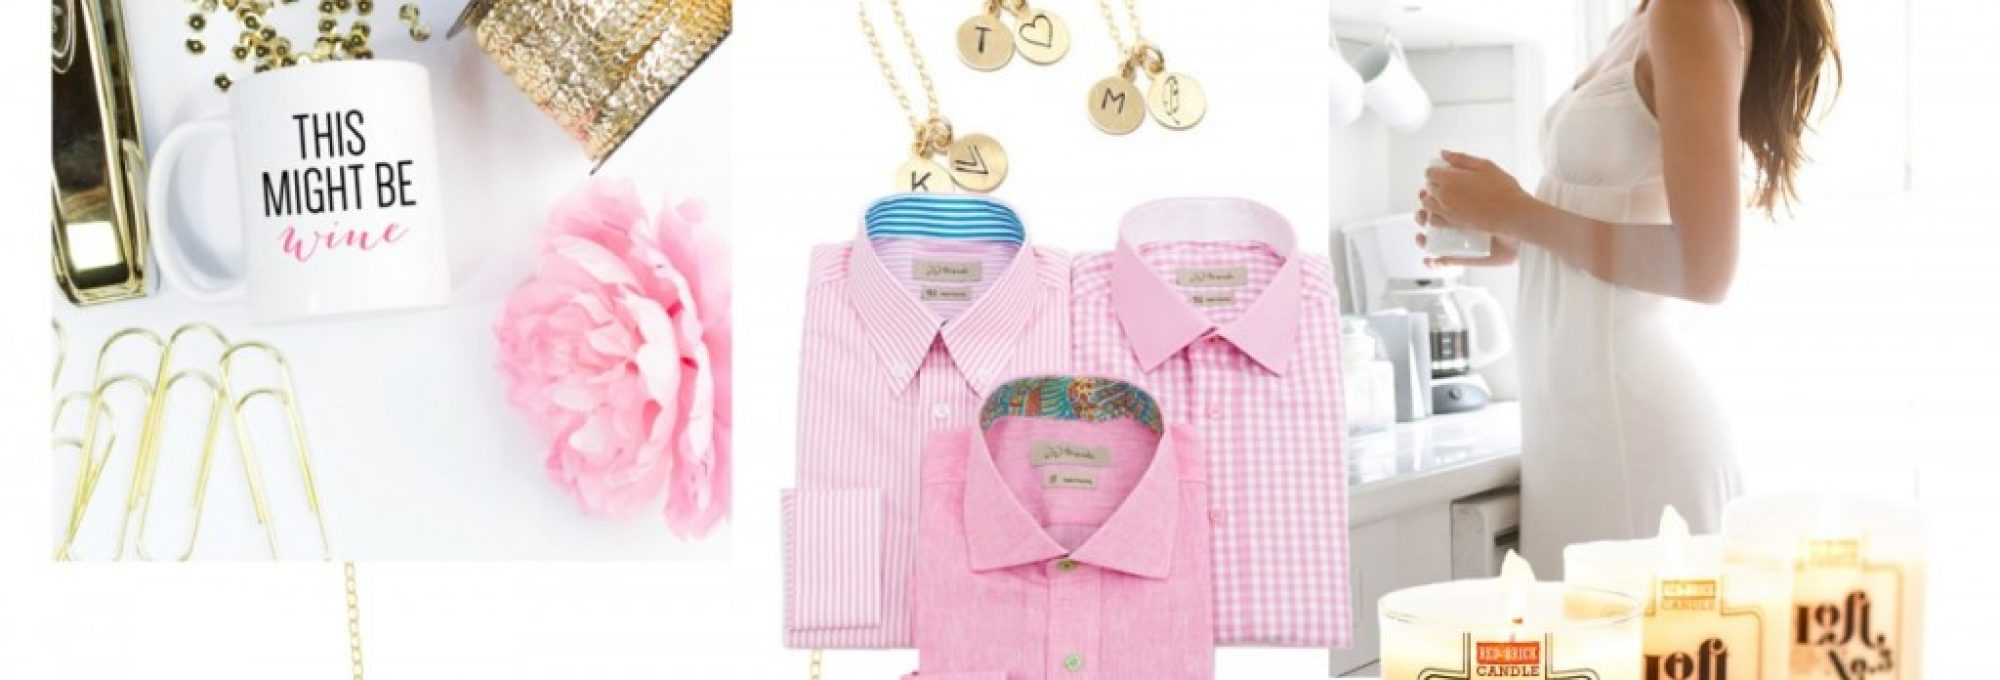 valentines day gift ideas, vday gift guide